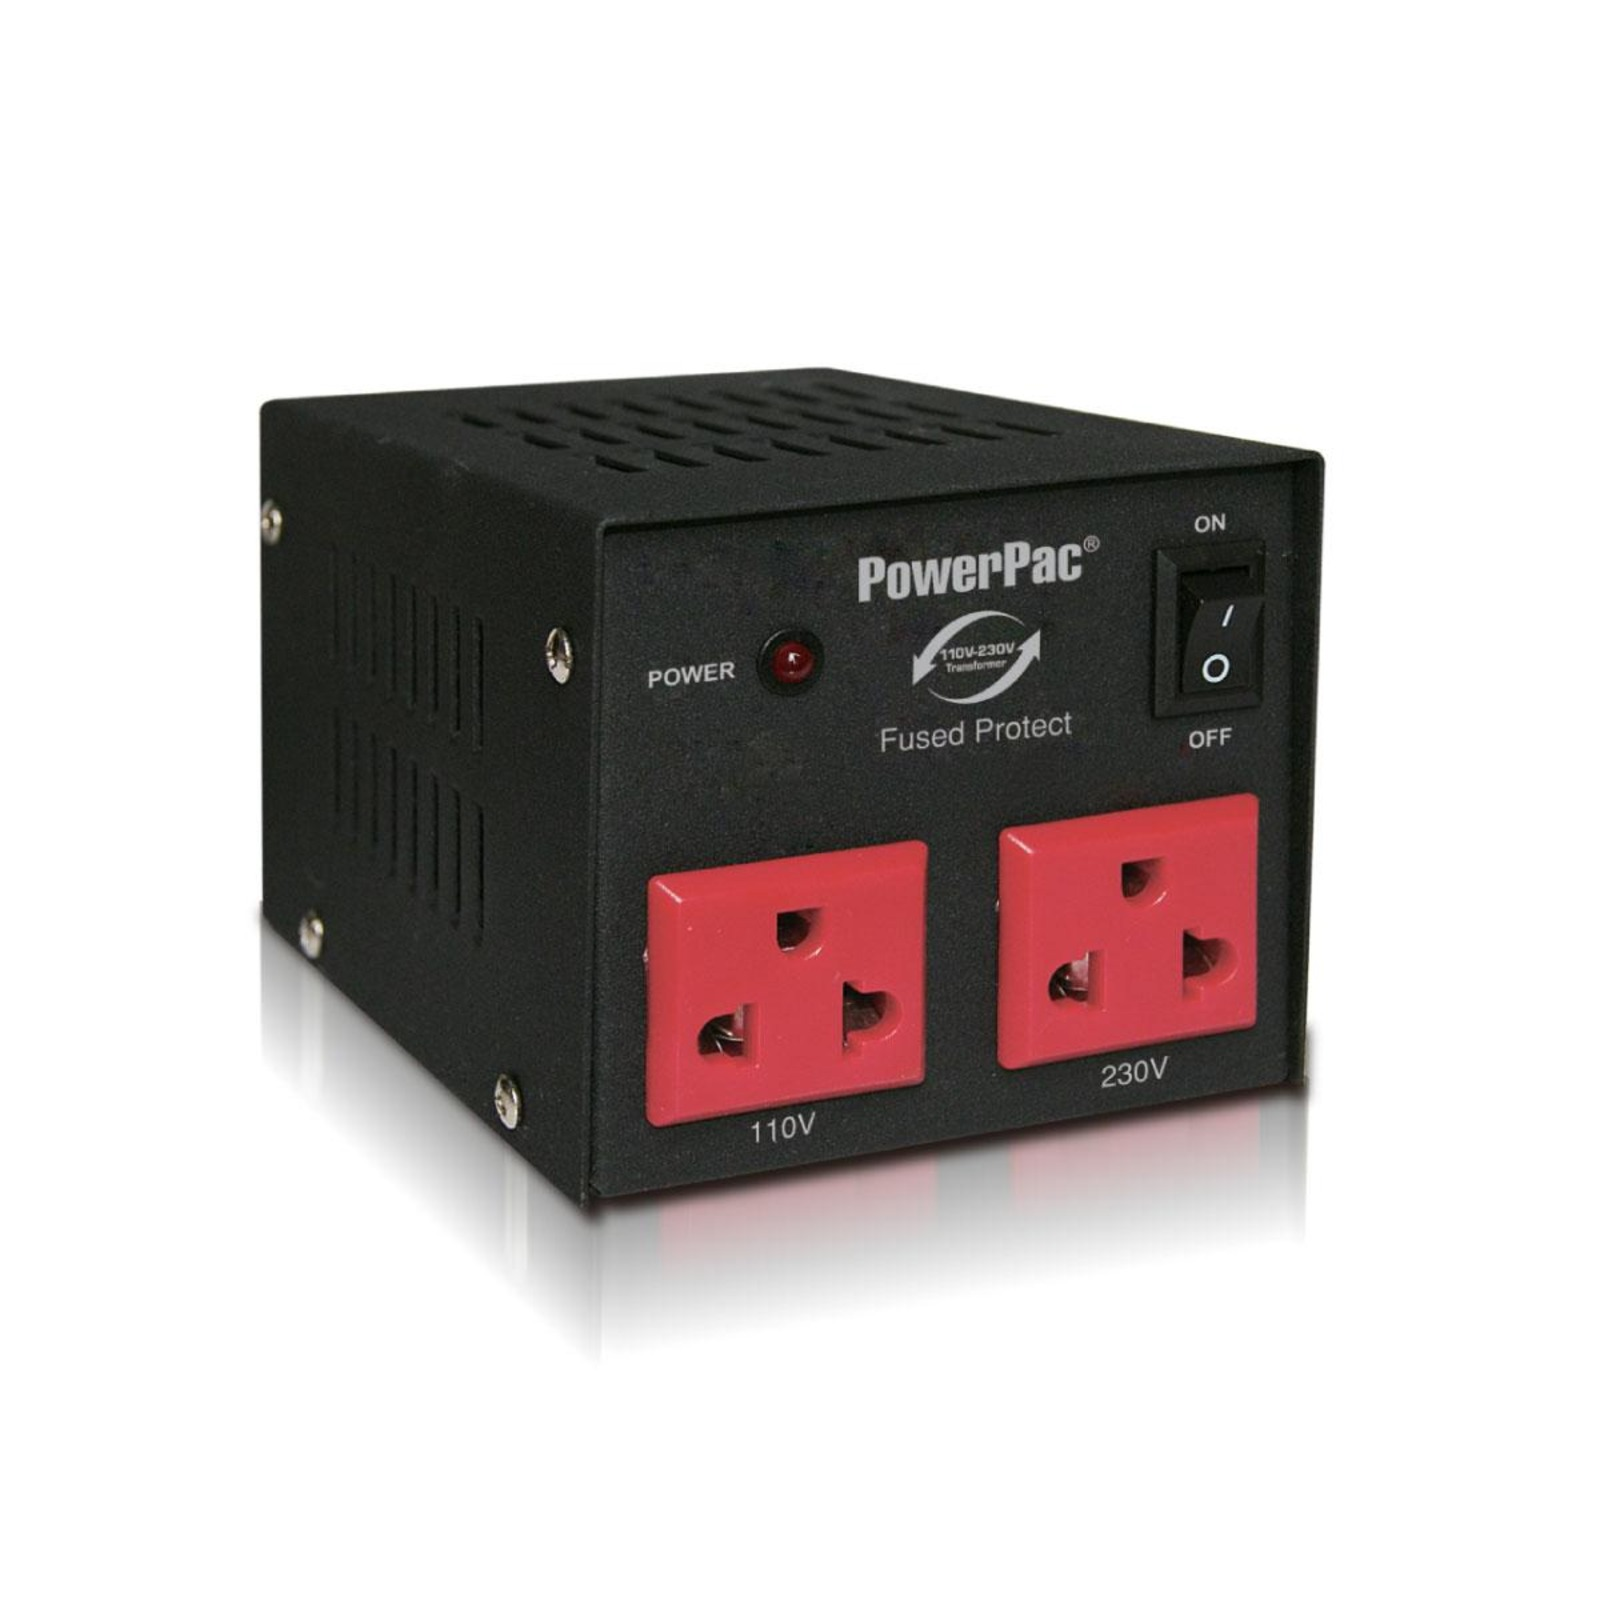 PowerPac (ST800) Voltage Converter